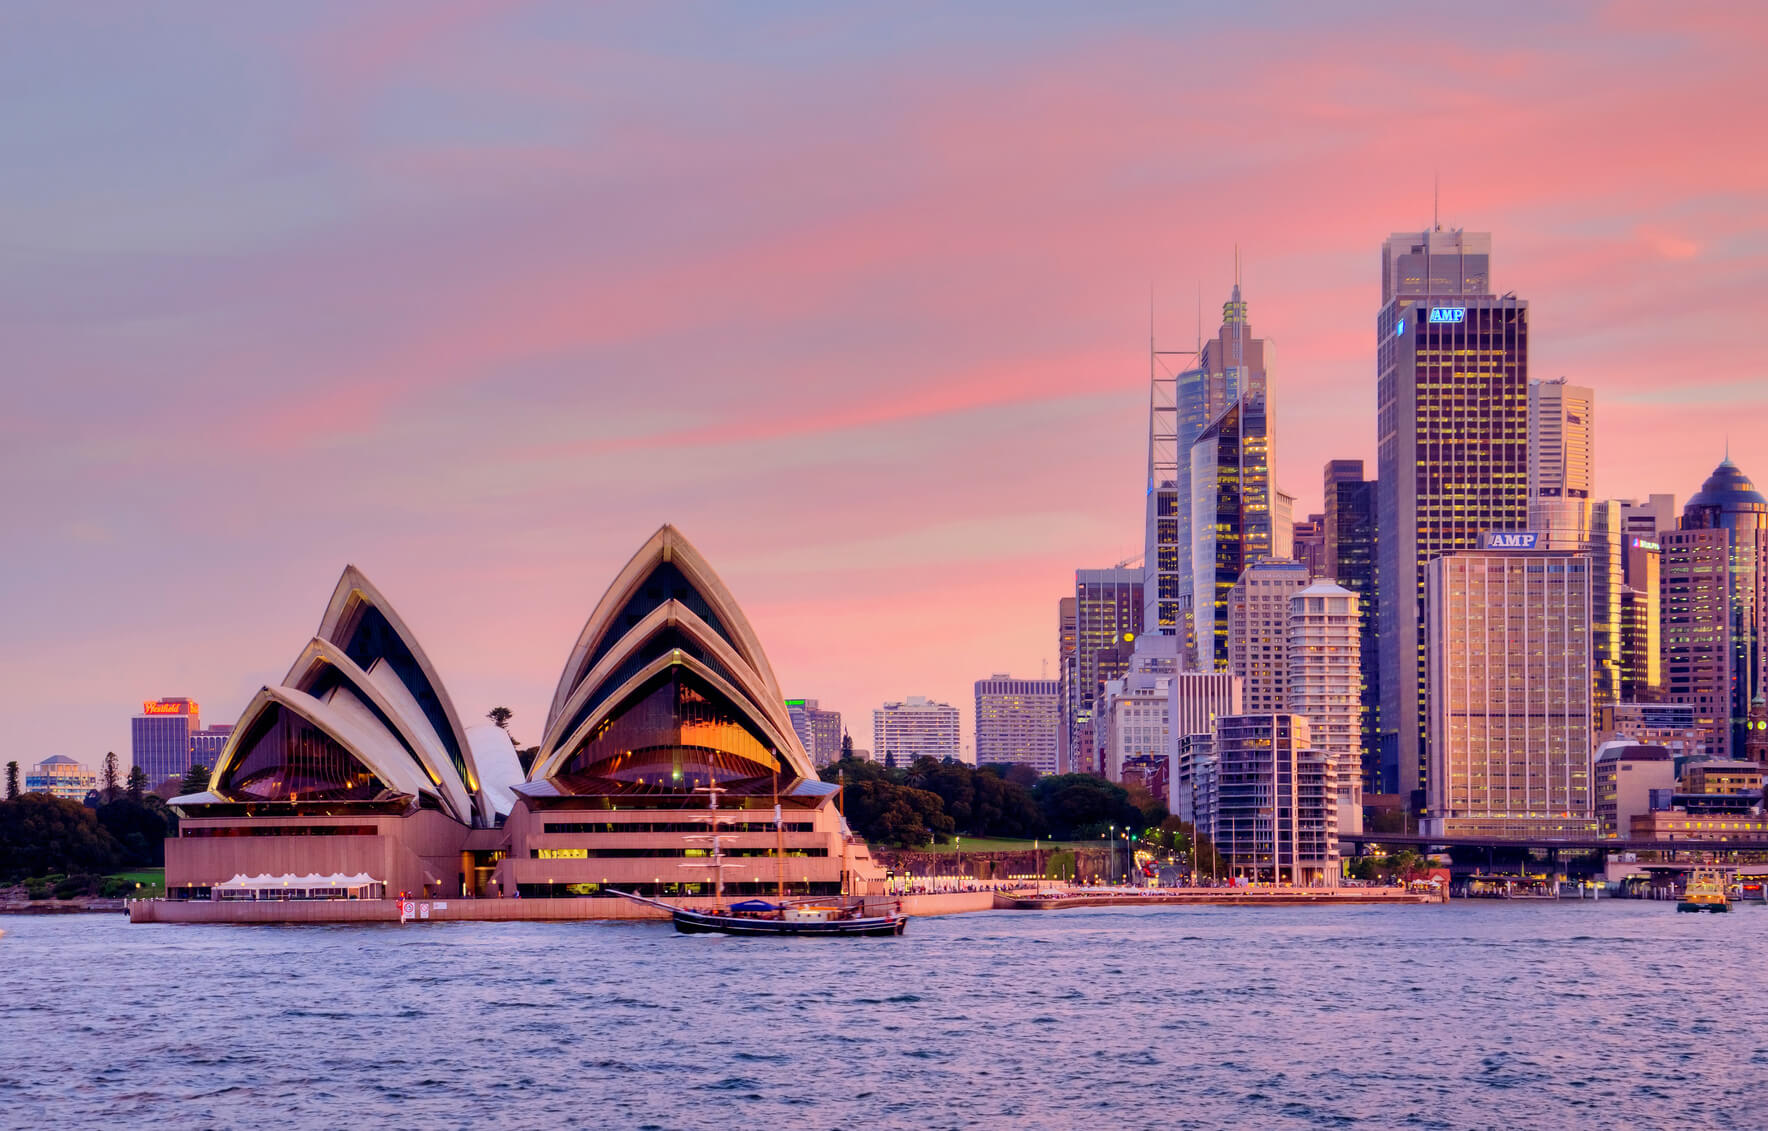 New York to Sydney, Australia for only $775 roundtrip (Nov-Feb dates)